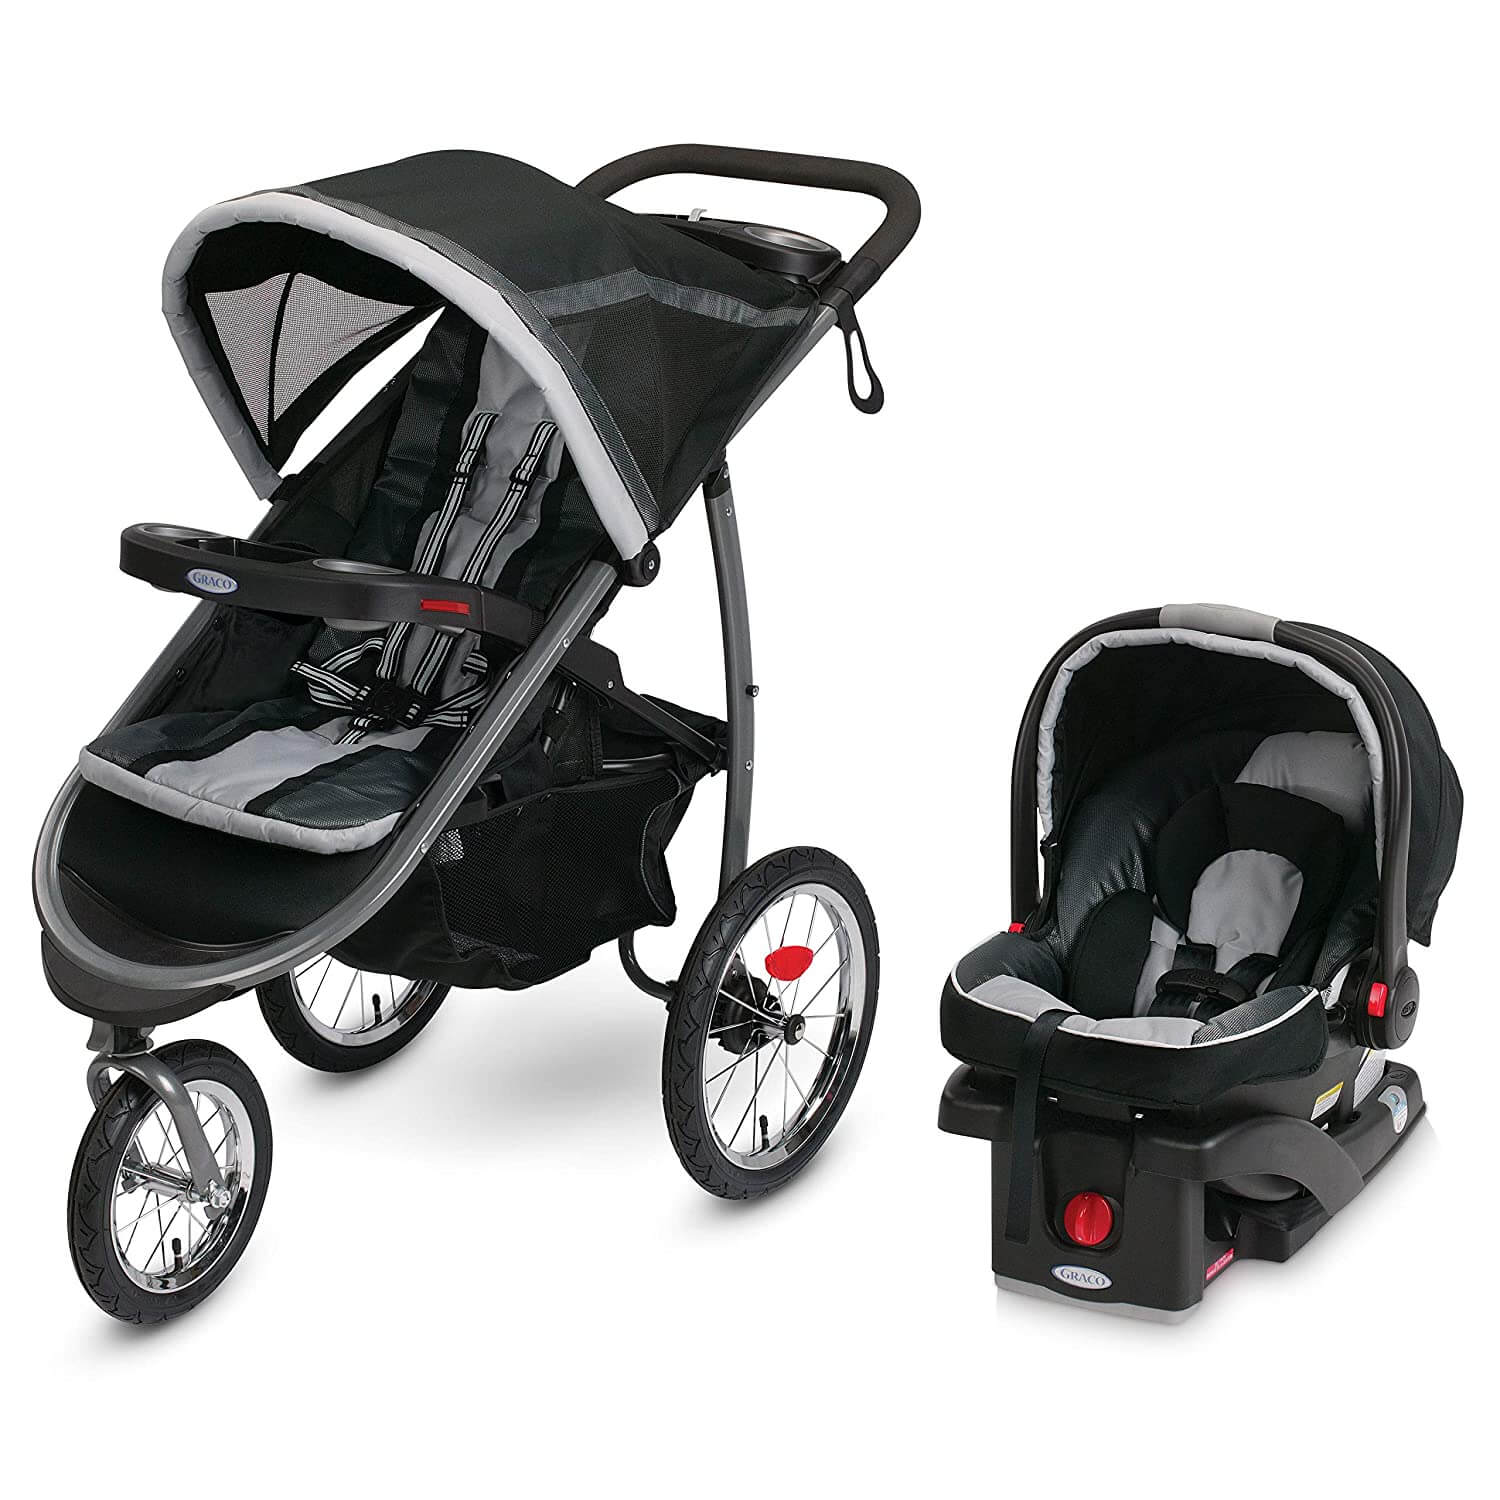 Graco FastAction Fold Jogger Travel System best baby stroller